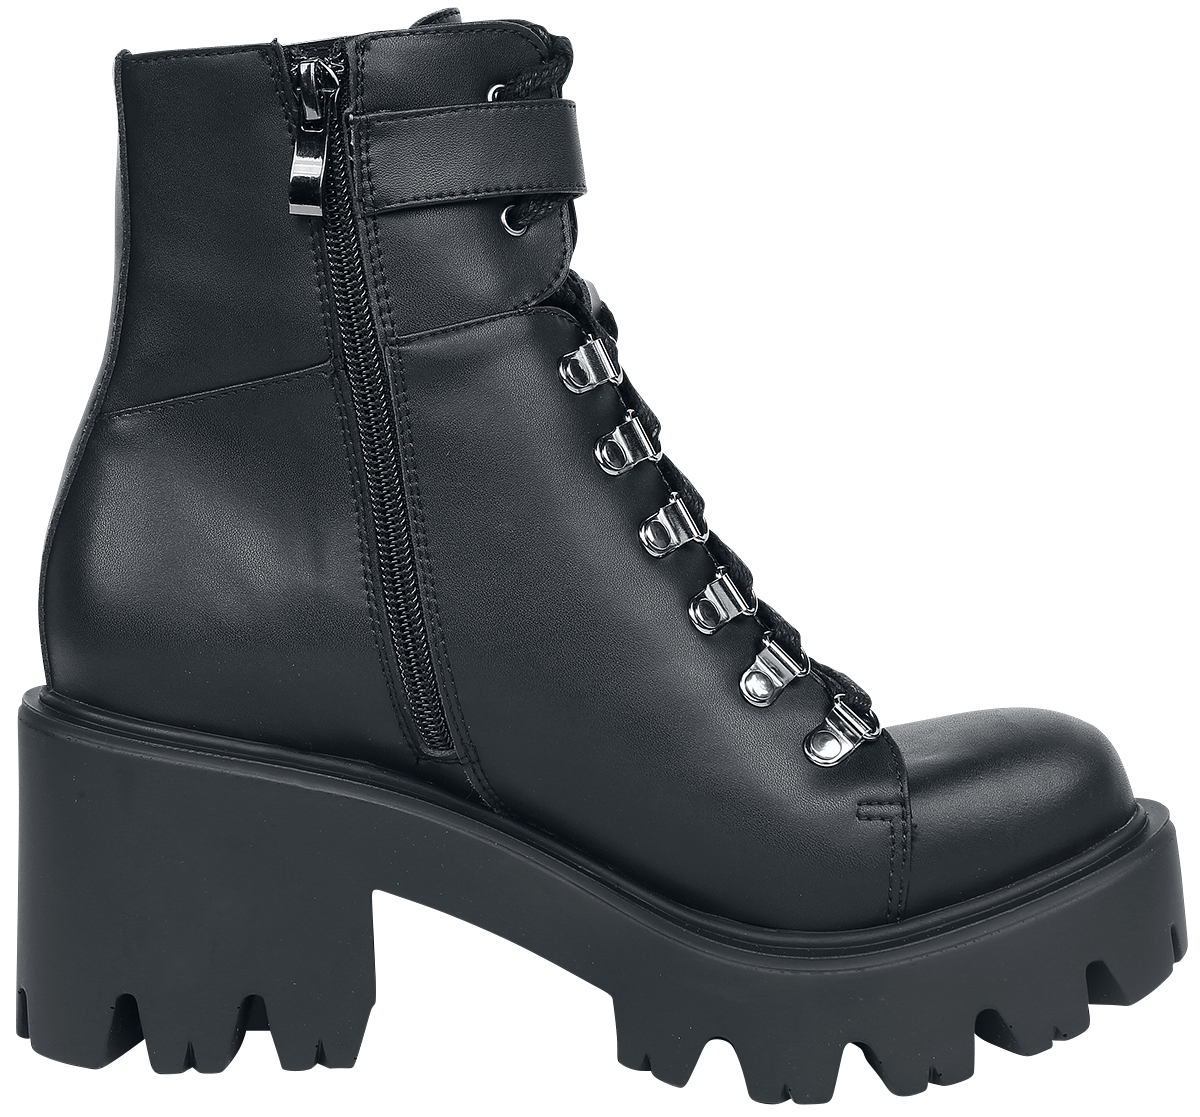 Image of Altercore Enid Vegan Stiefel schwarz